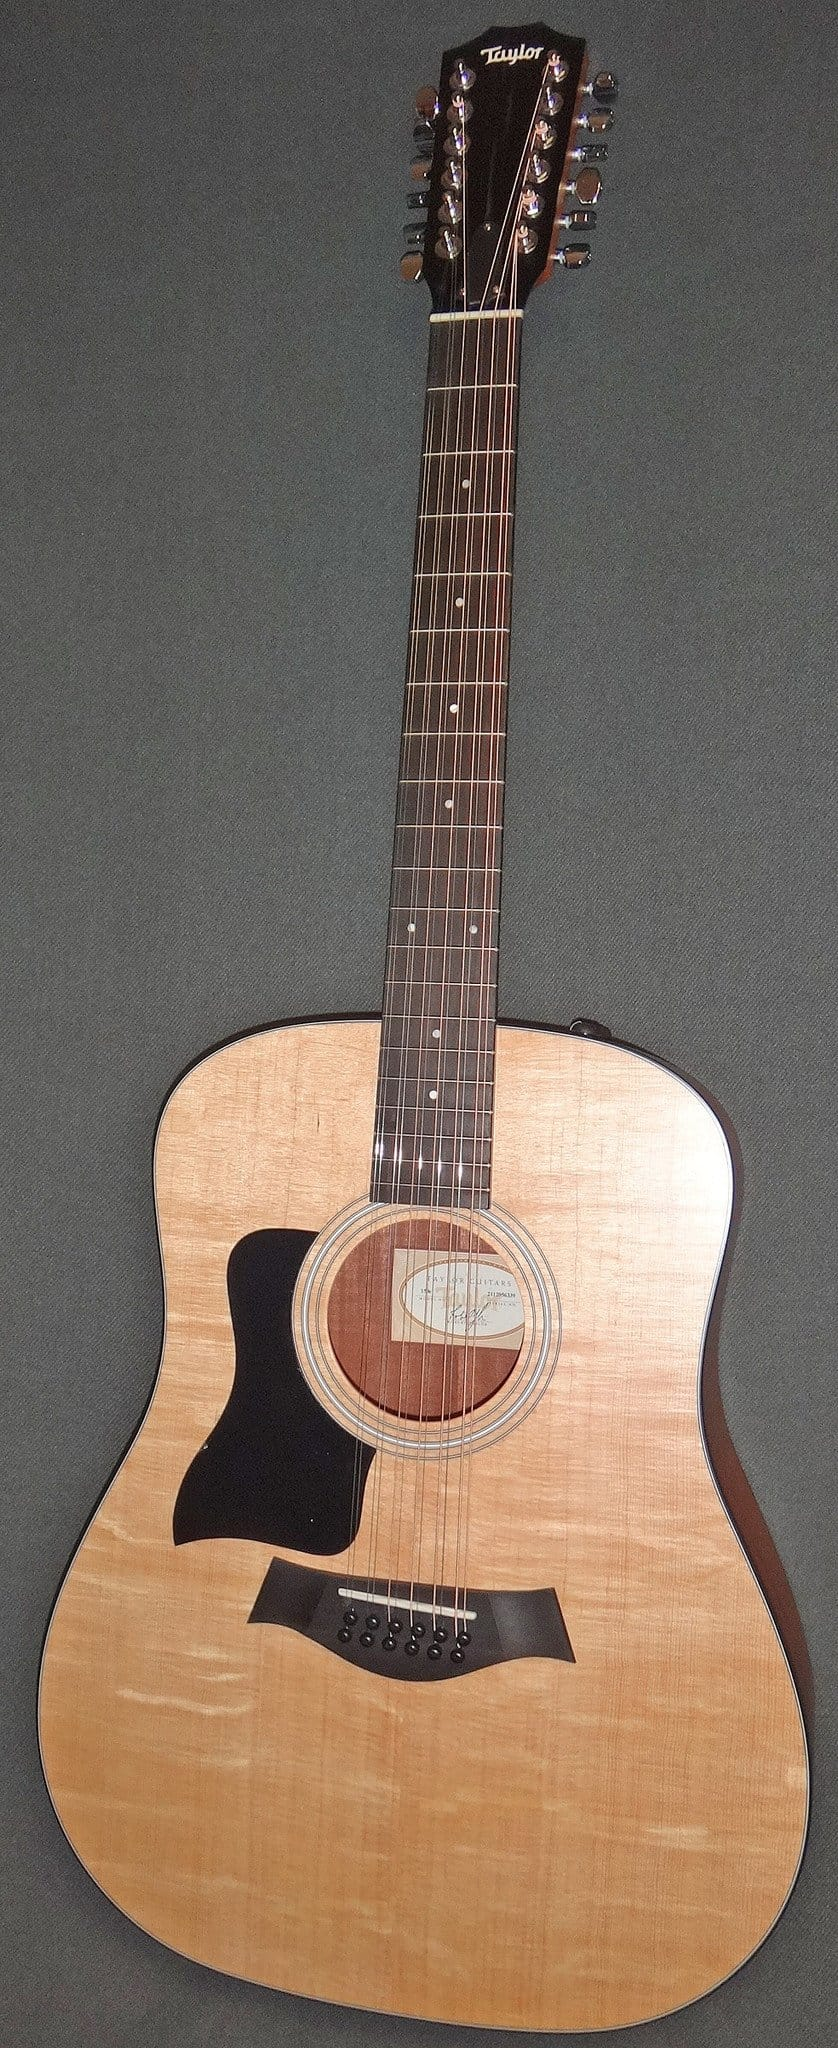 Taylor 150E Left Handed 12 String Dreadnought Acoustic